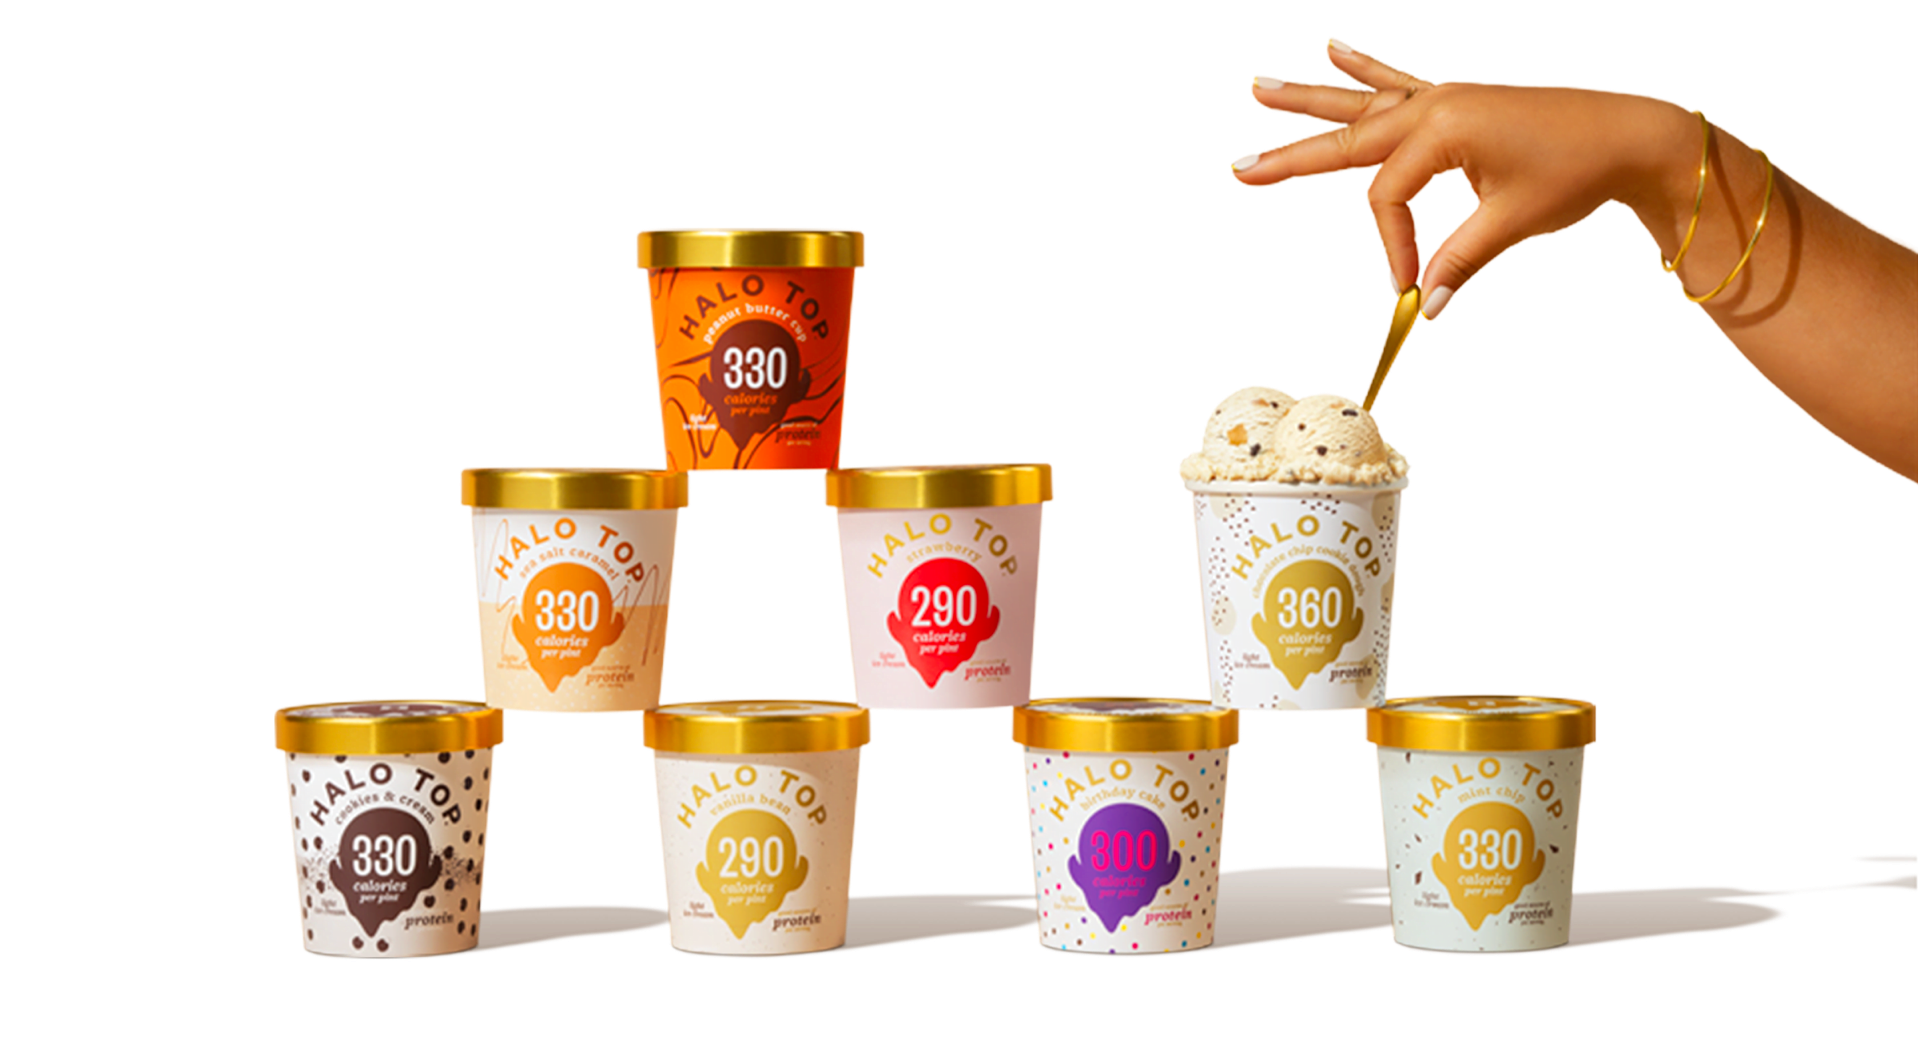 stacked Halo Top ice cream tubs